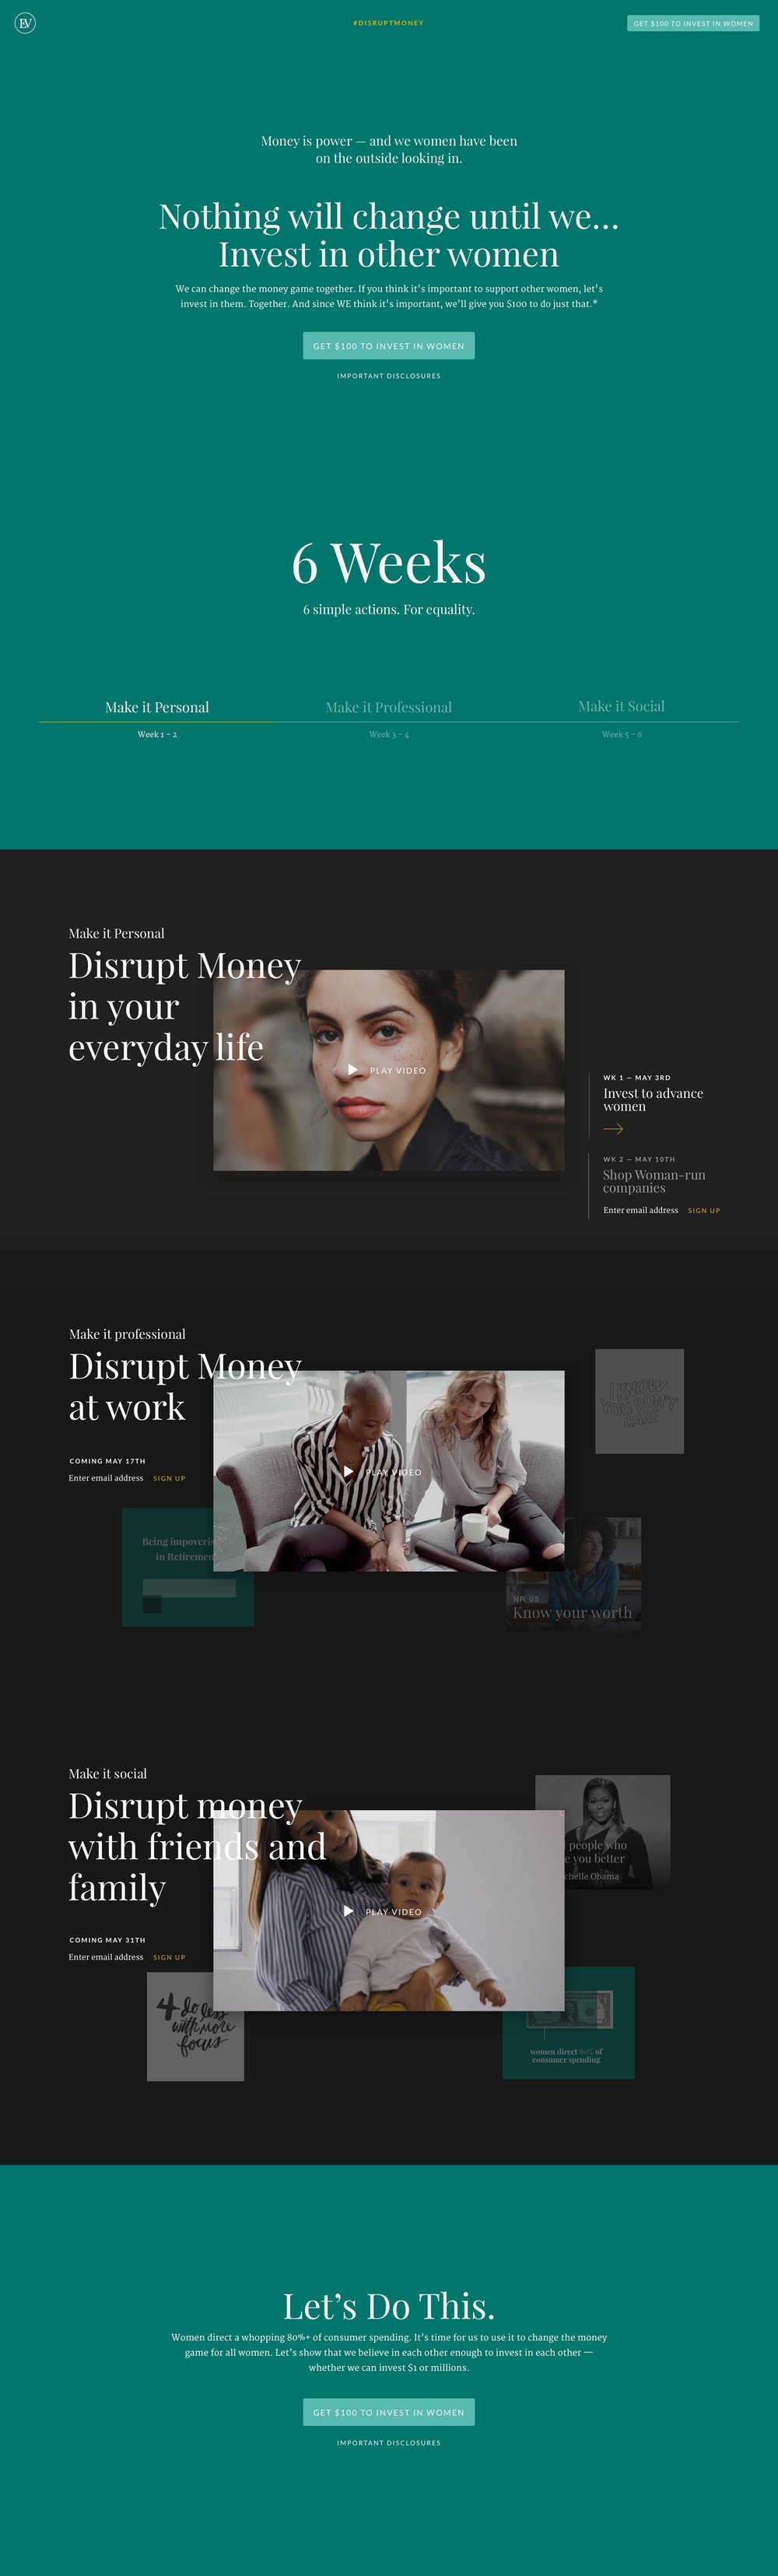 Ellevest-DisruptMoney-LP-full-00_@2x.jpg